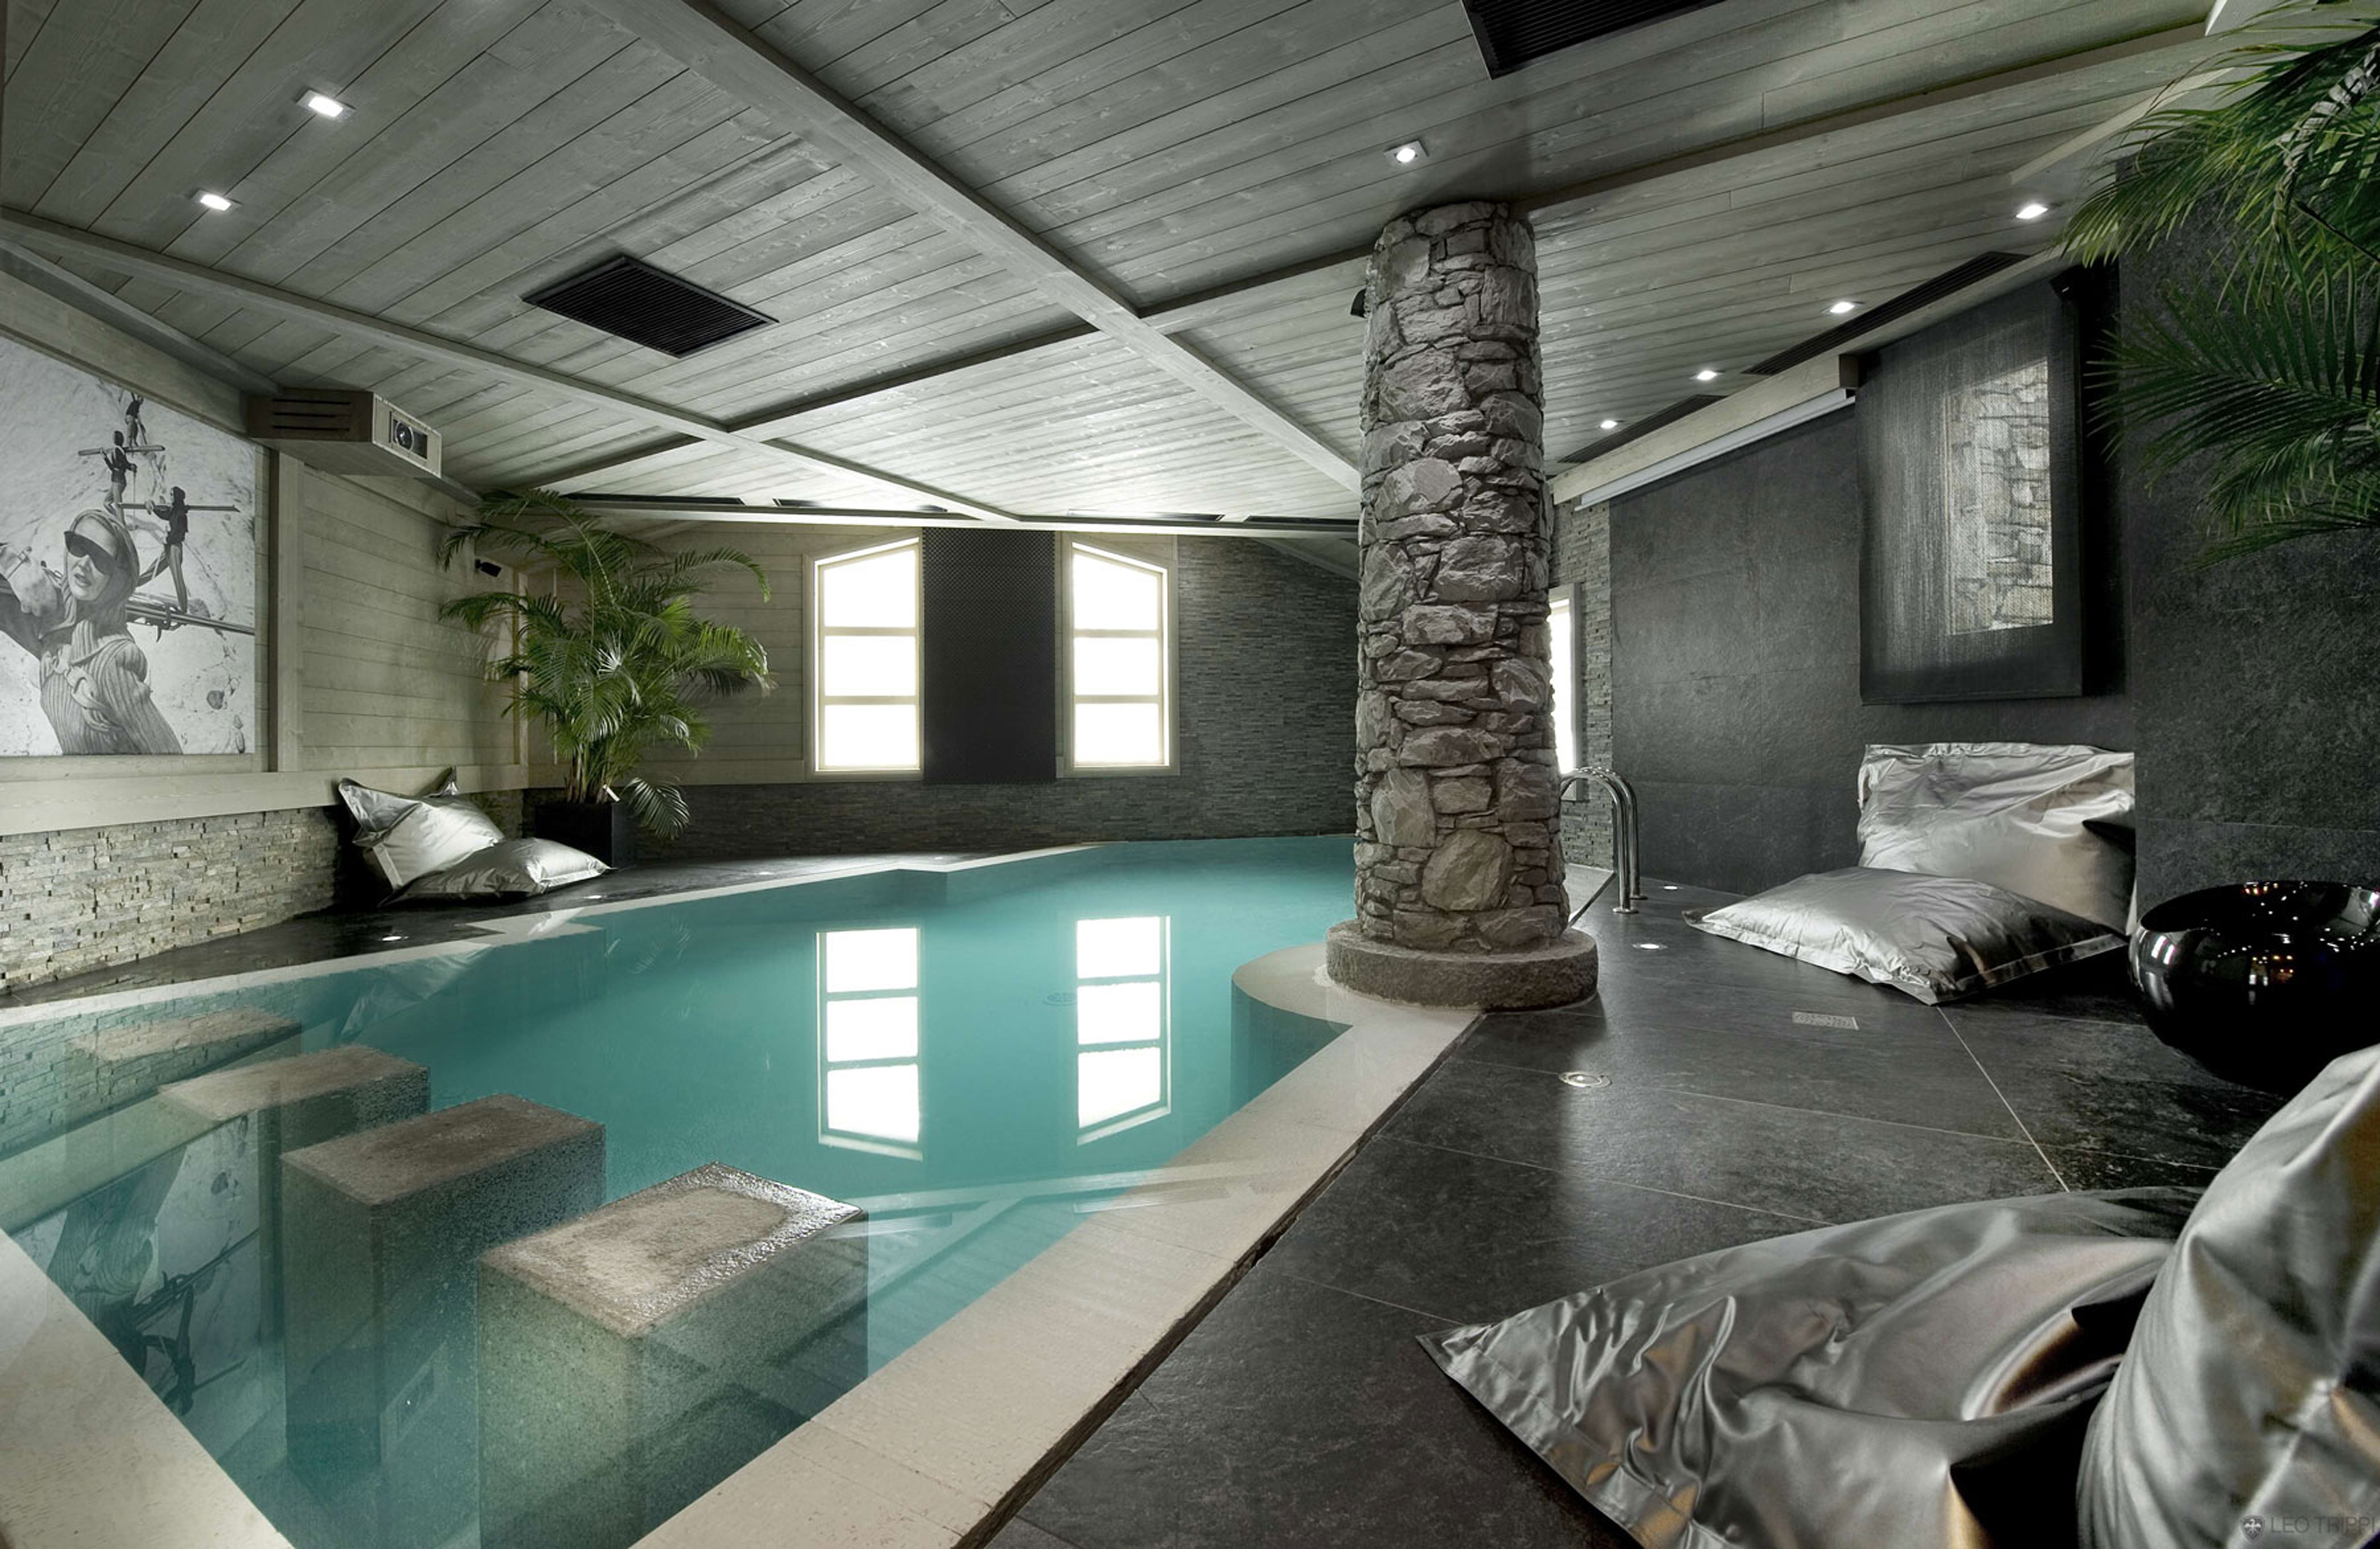 Luxury Indoor Swimming Pool Design Idea With Clear Blue Pool Water Black Floor Tile And Gray Stone Pillar Cool Indoor Swimming Pool Design Ideas (Image 70 of 123)